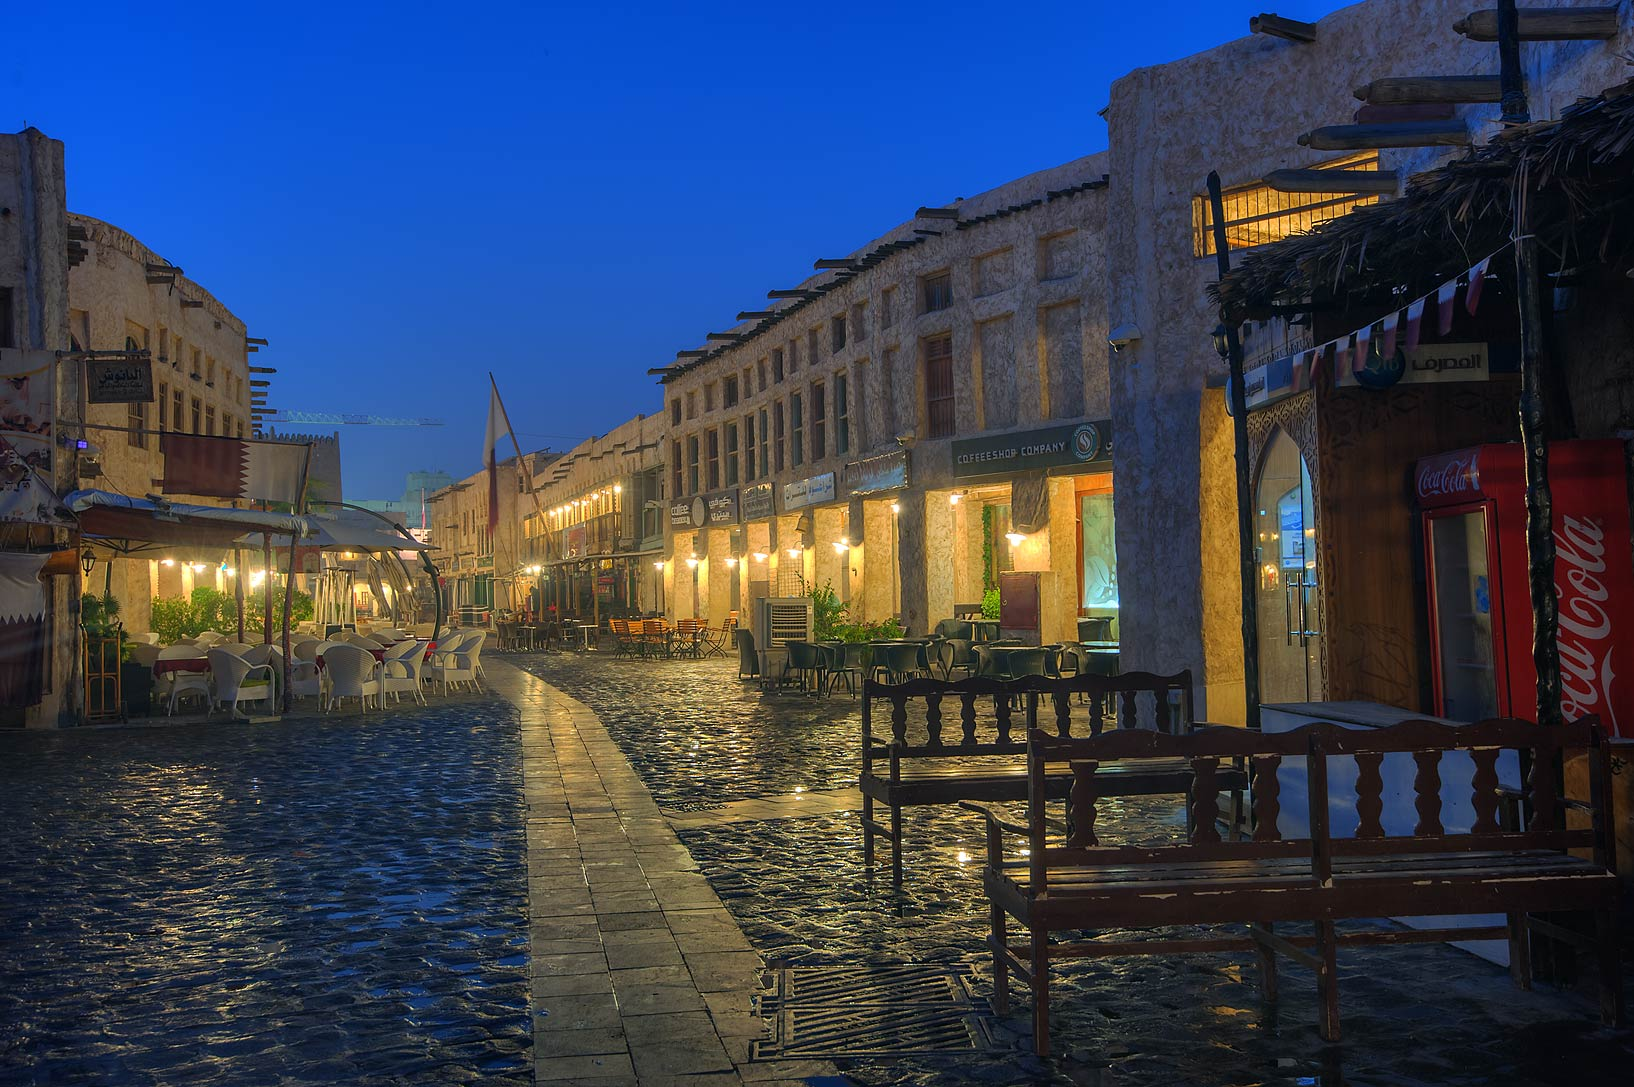 Cafes and shops in Souq Waqif (old market). Doha, Qatar